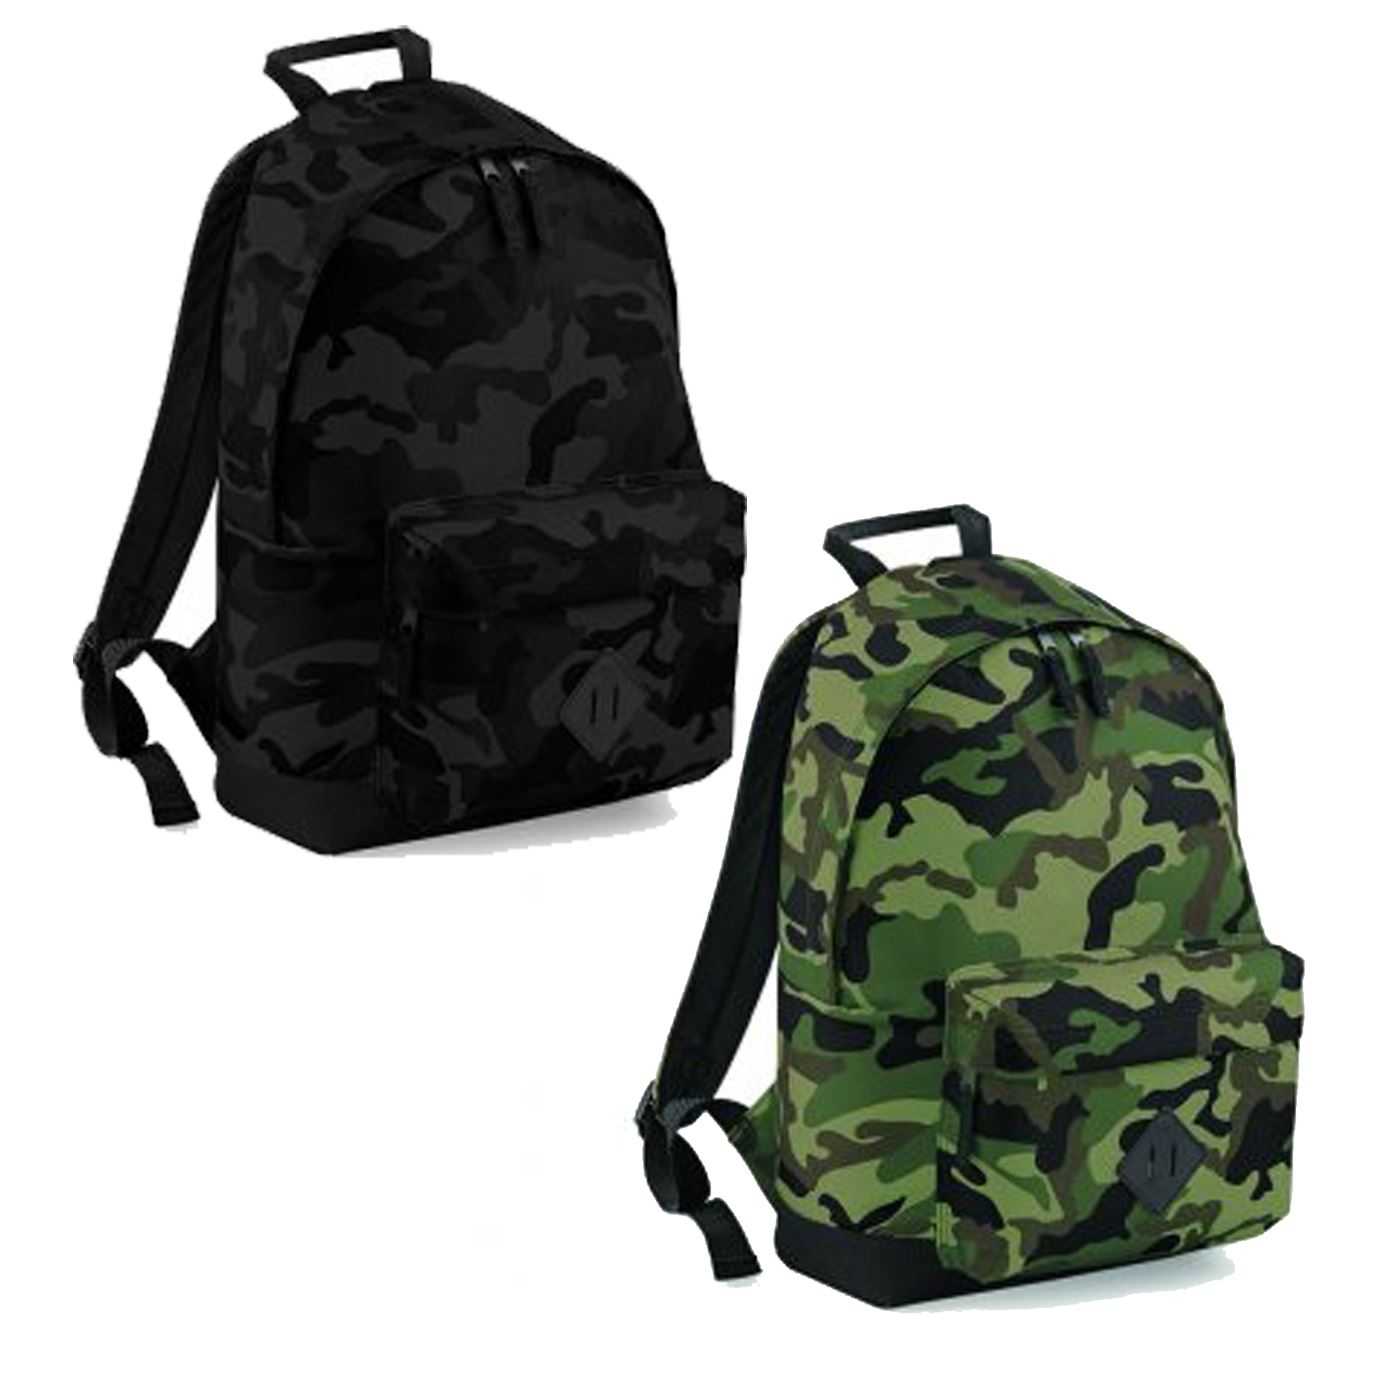 Camouflage Backpack With Wheels- Fenix Toulouse Handball ea4f95eac2ac4